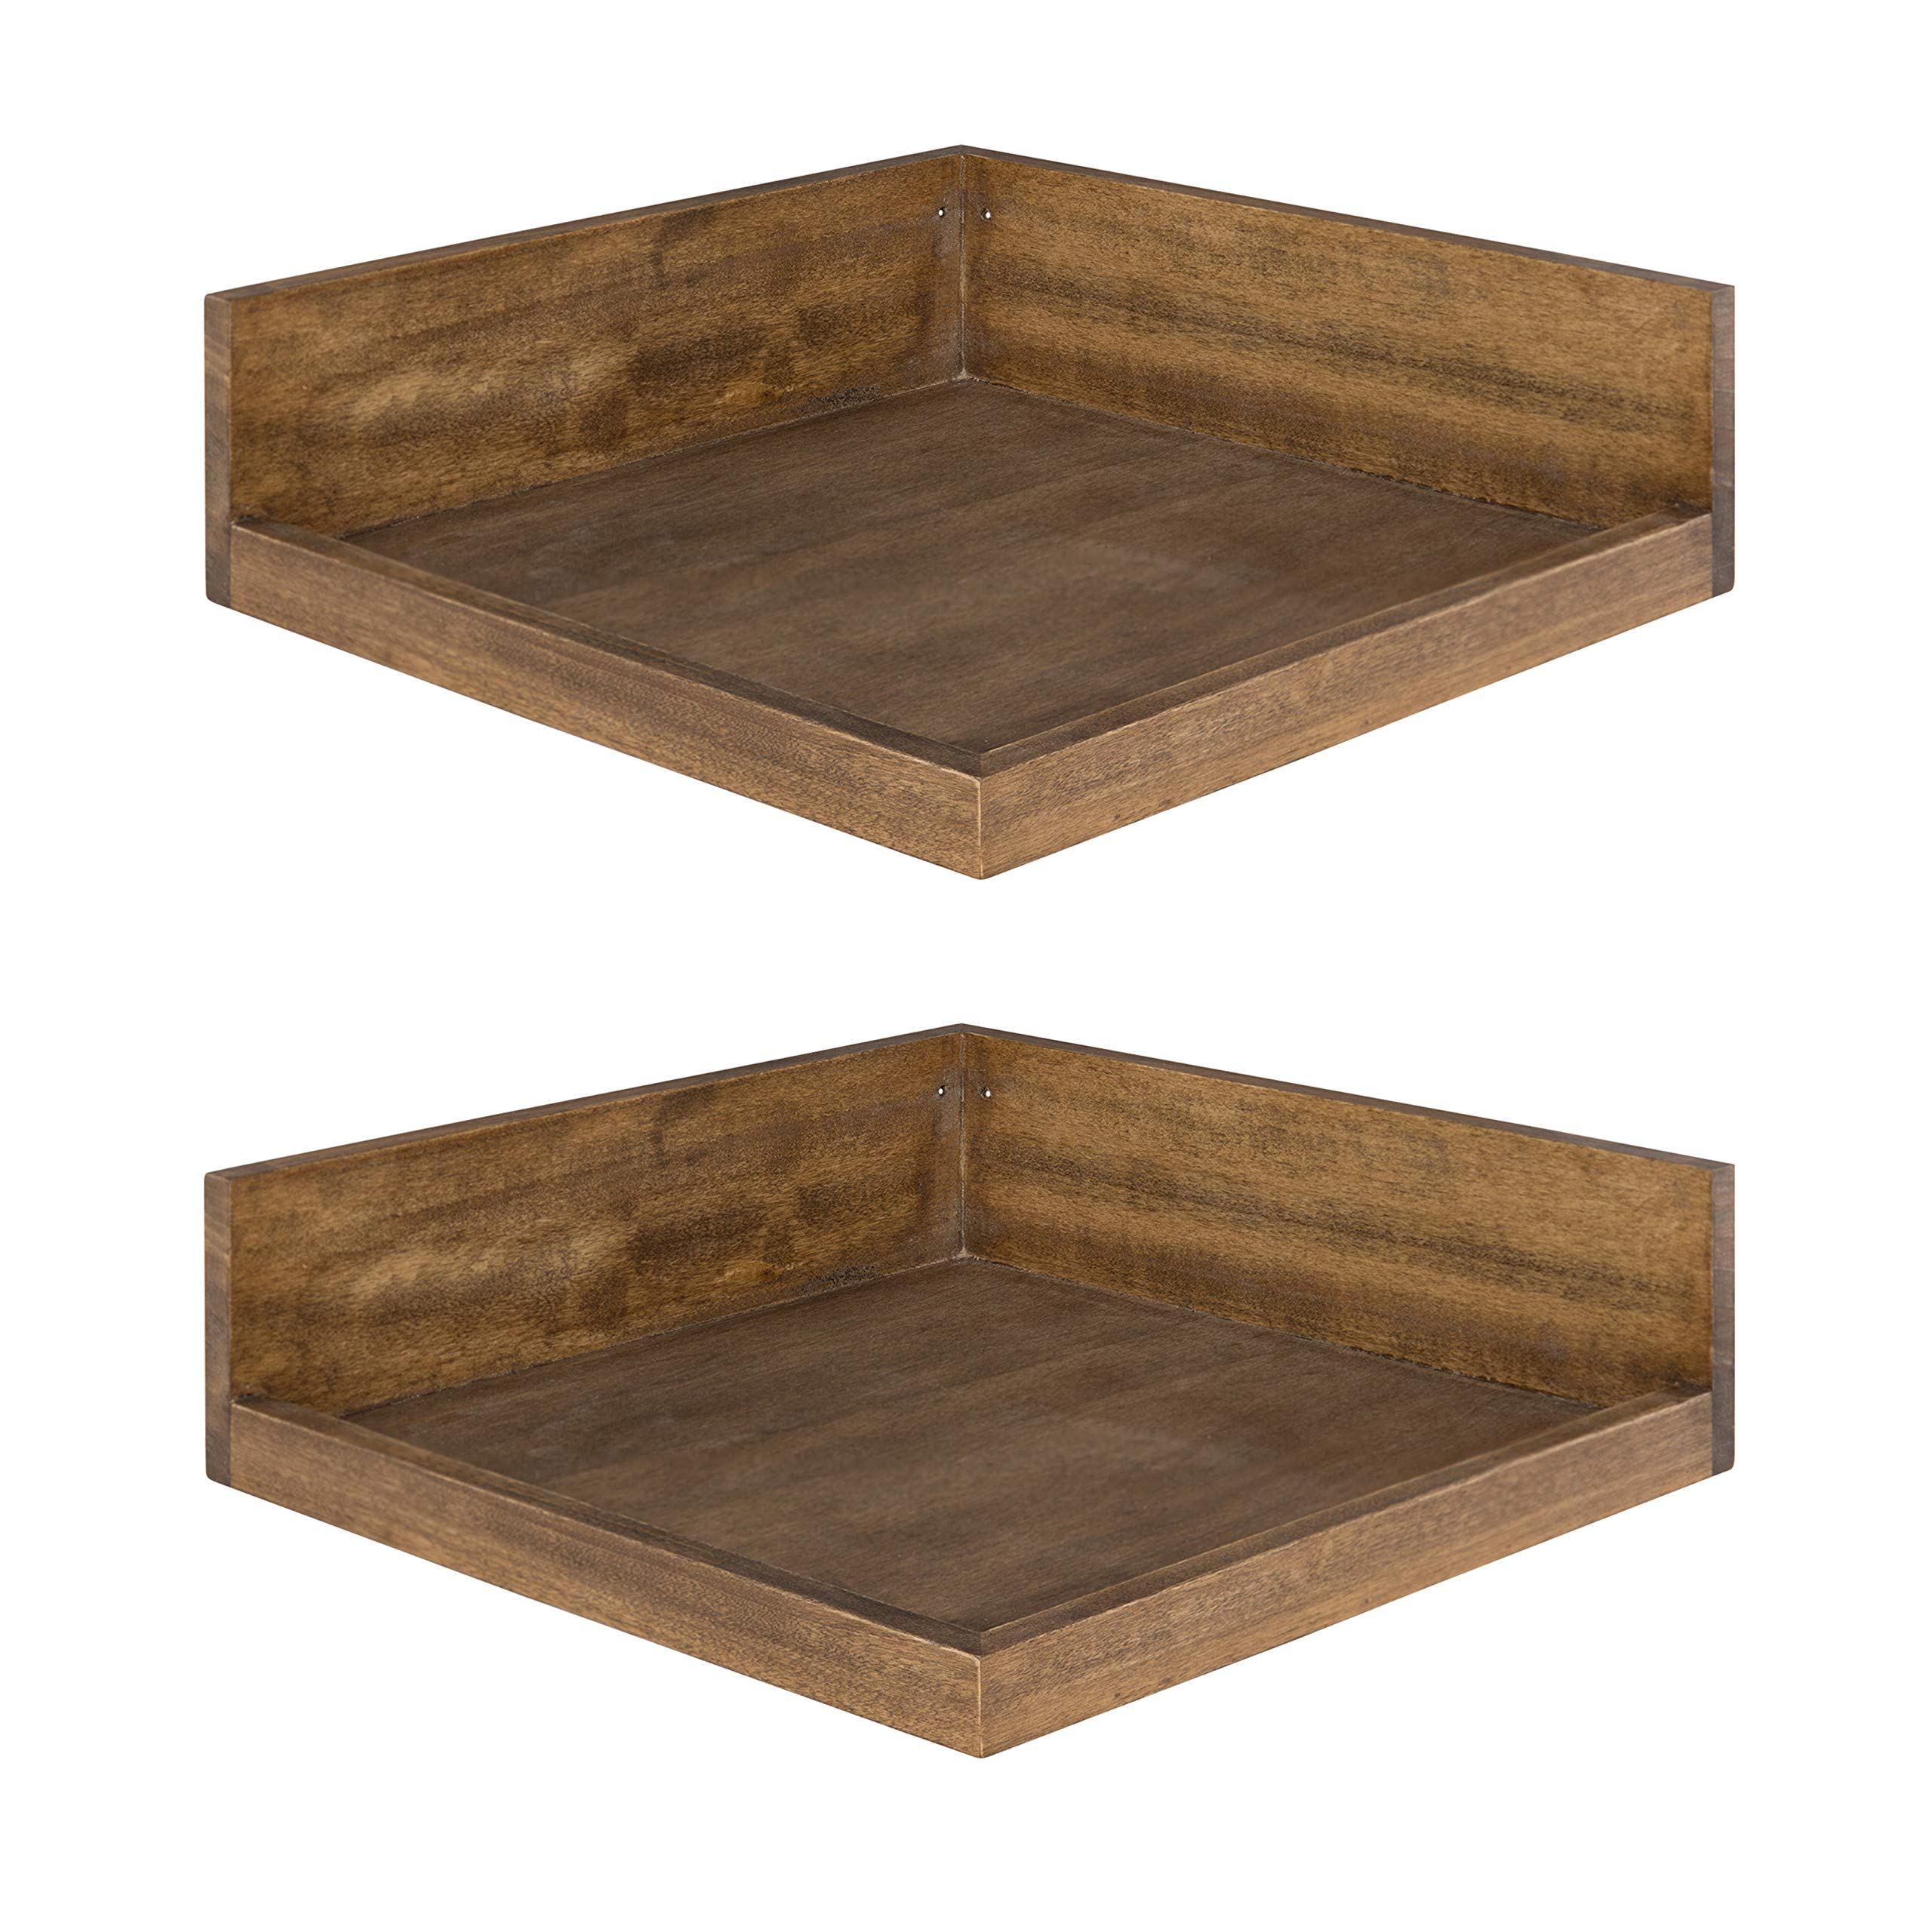 Kate and Laurel Levie Modern 2 Piece Set Floating Corner Wood Wall Shelves with Picture Frame Holder Ledge, 12 Inches Wide x 12 Inches Deep, Rustic Brown by Kate and Laurel